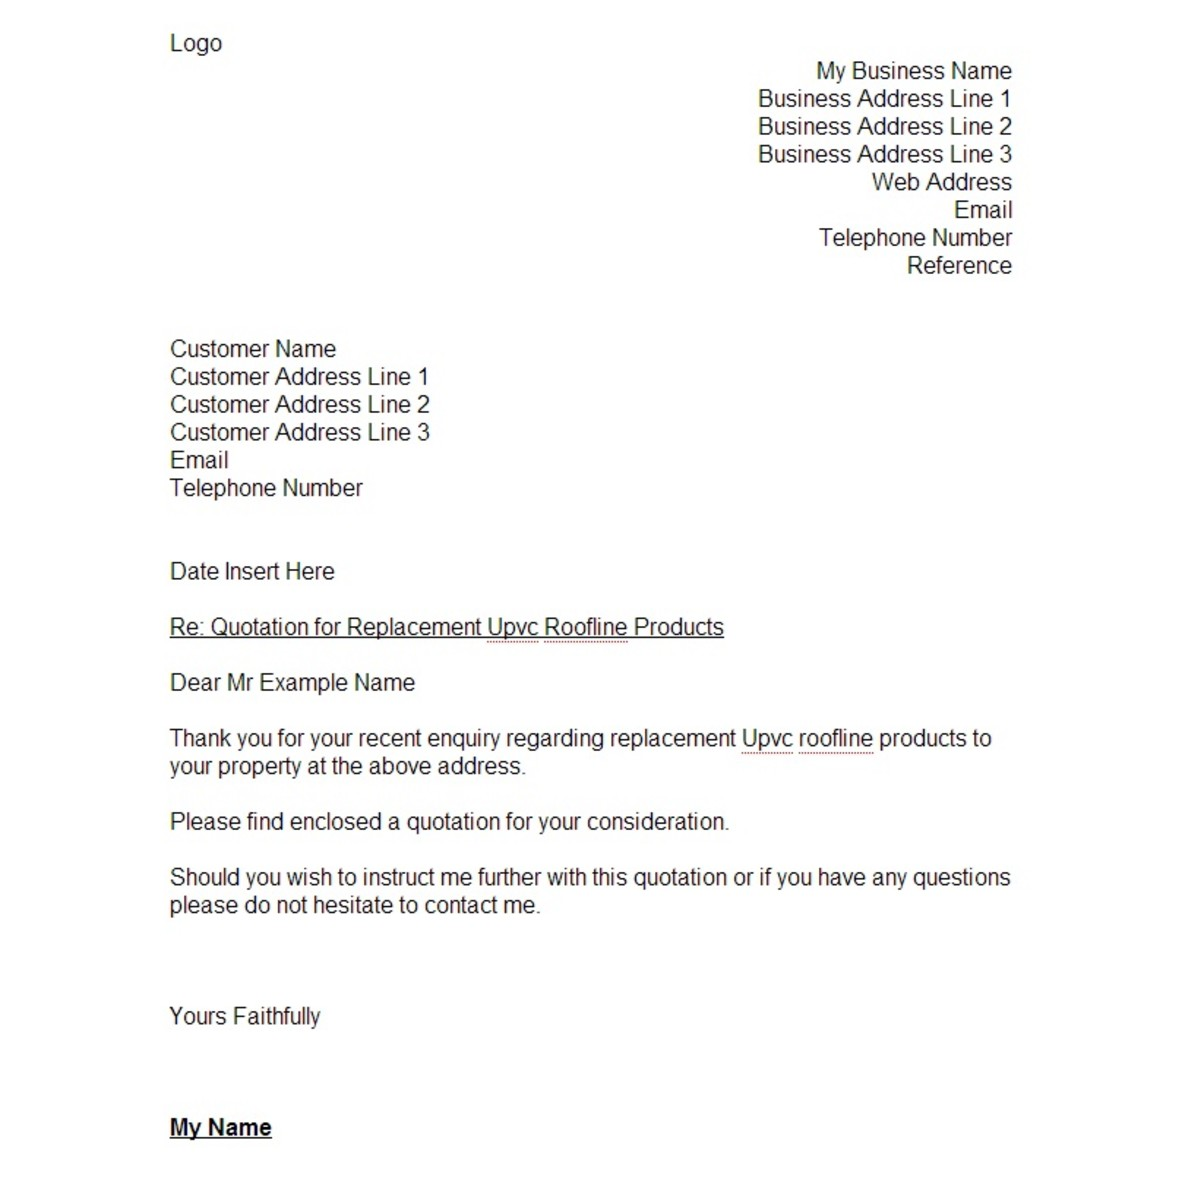 Quotation request letter sample doc cover letter quotation letters request spiritdancerdesigns Image collections